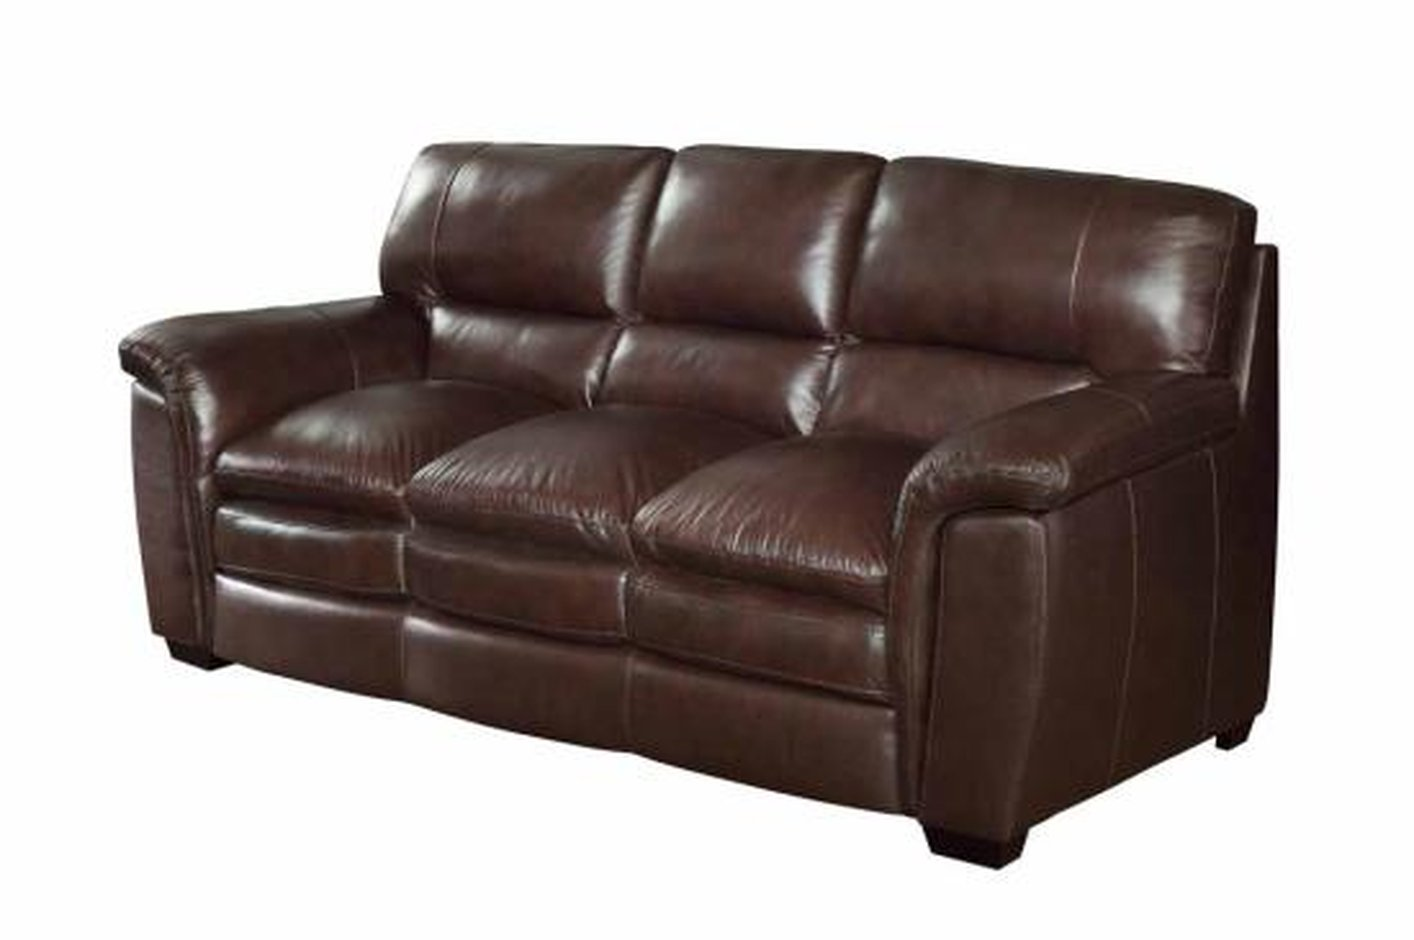 Brown leather sofa roselawnlutheran for Furniture leather sofa